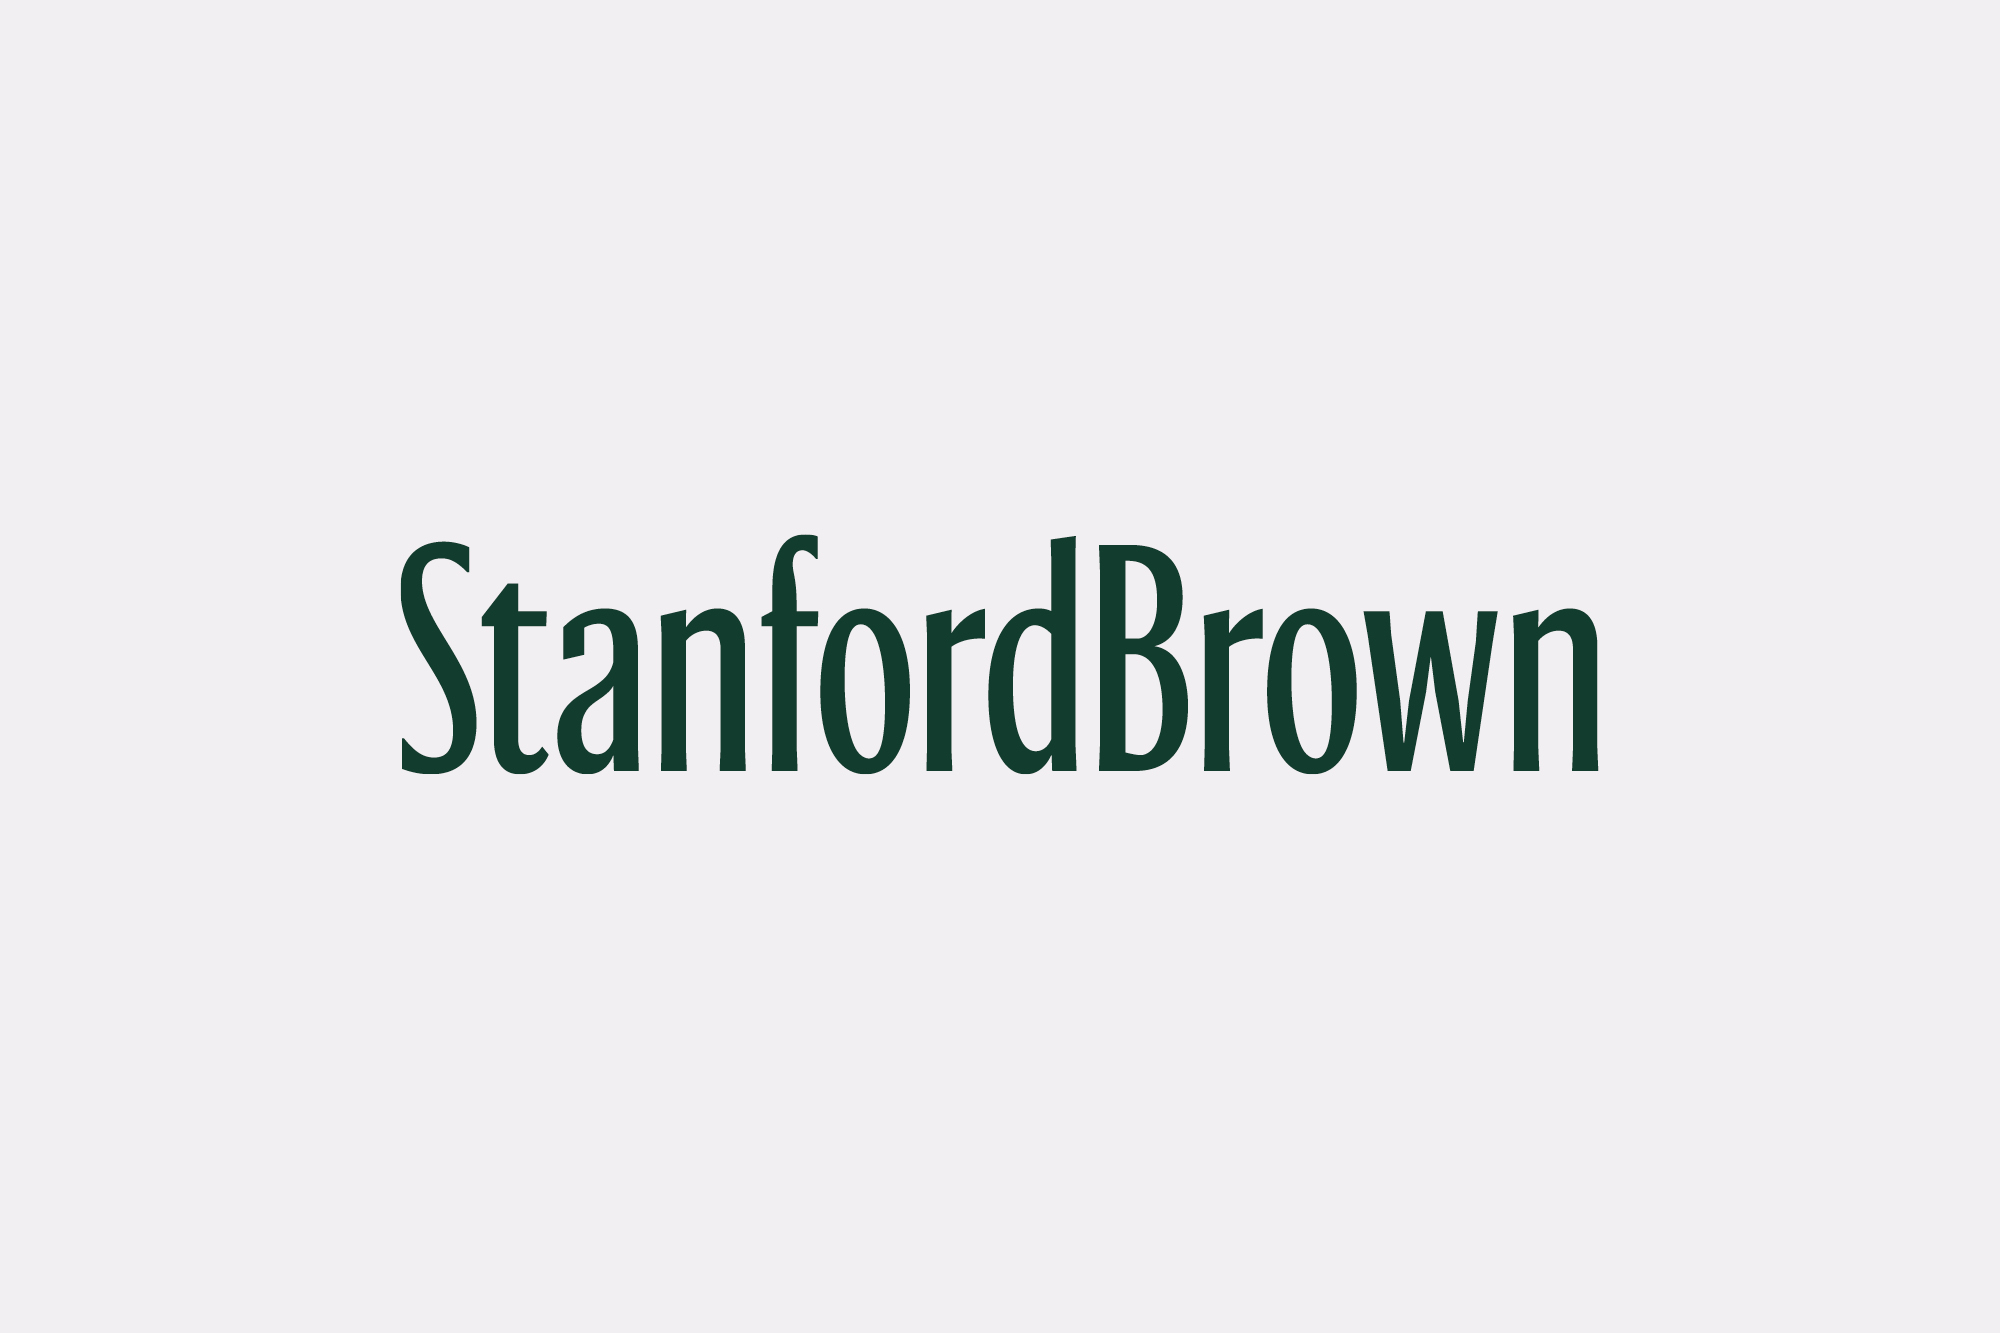 Accompany Creates New Identity for Stanford Brown Financial Services